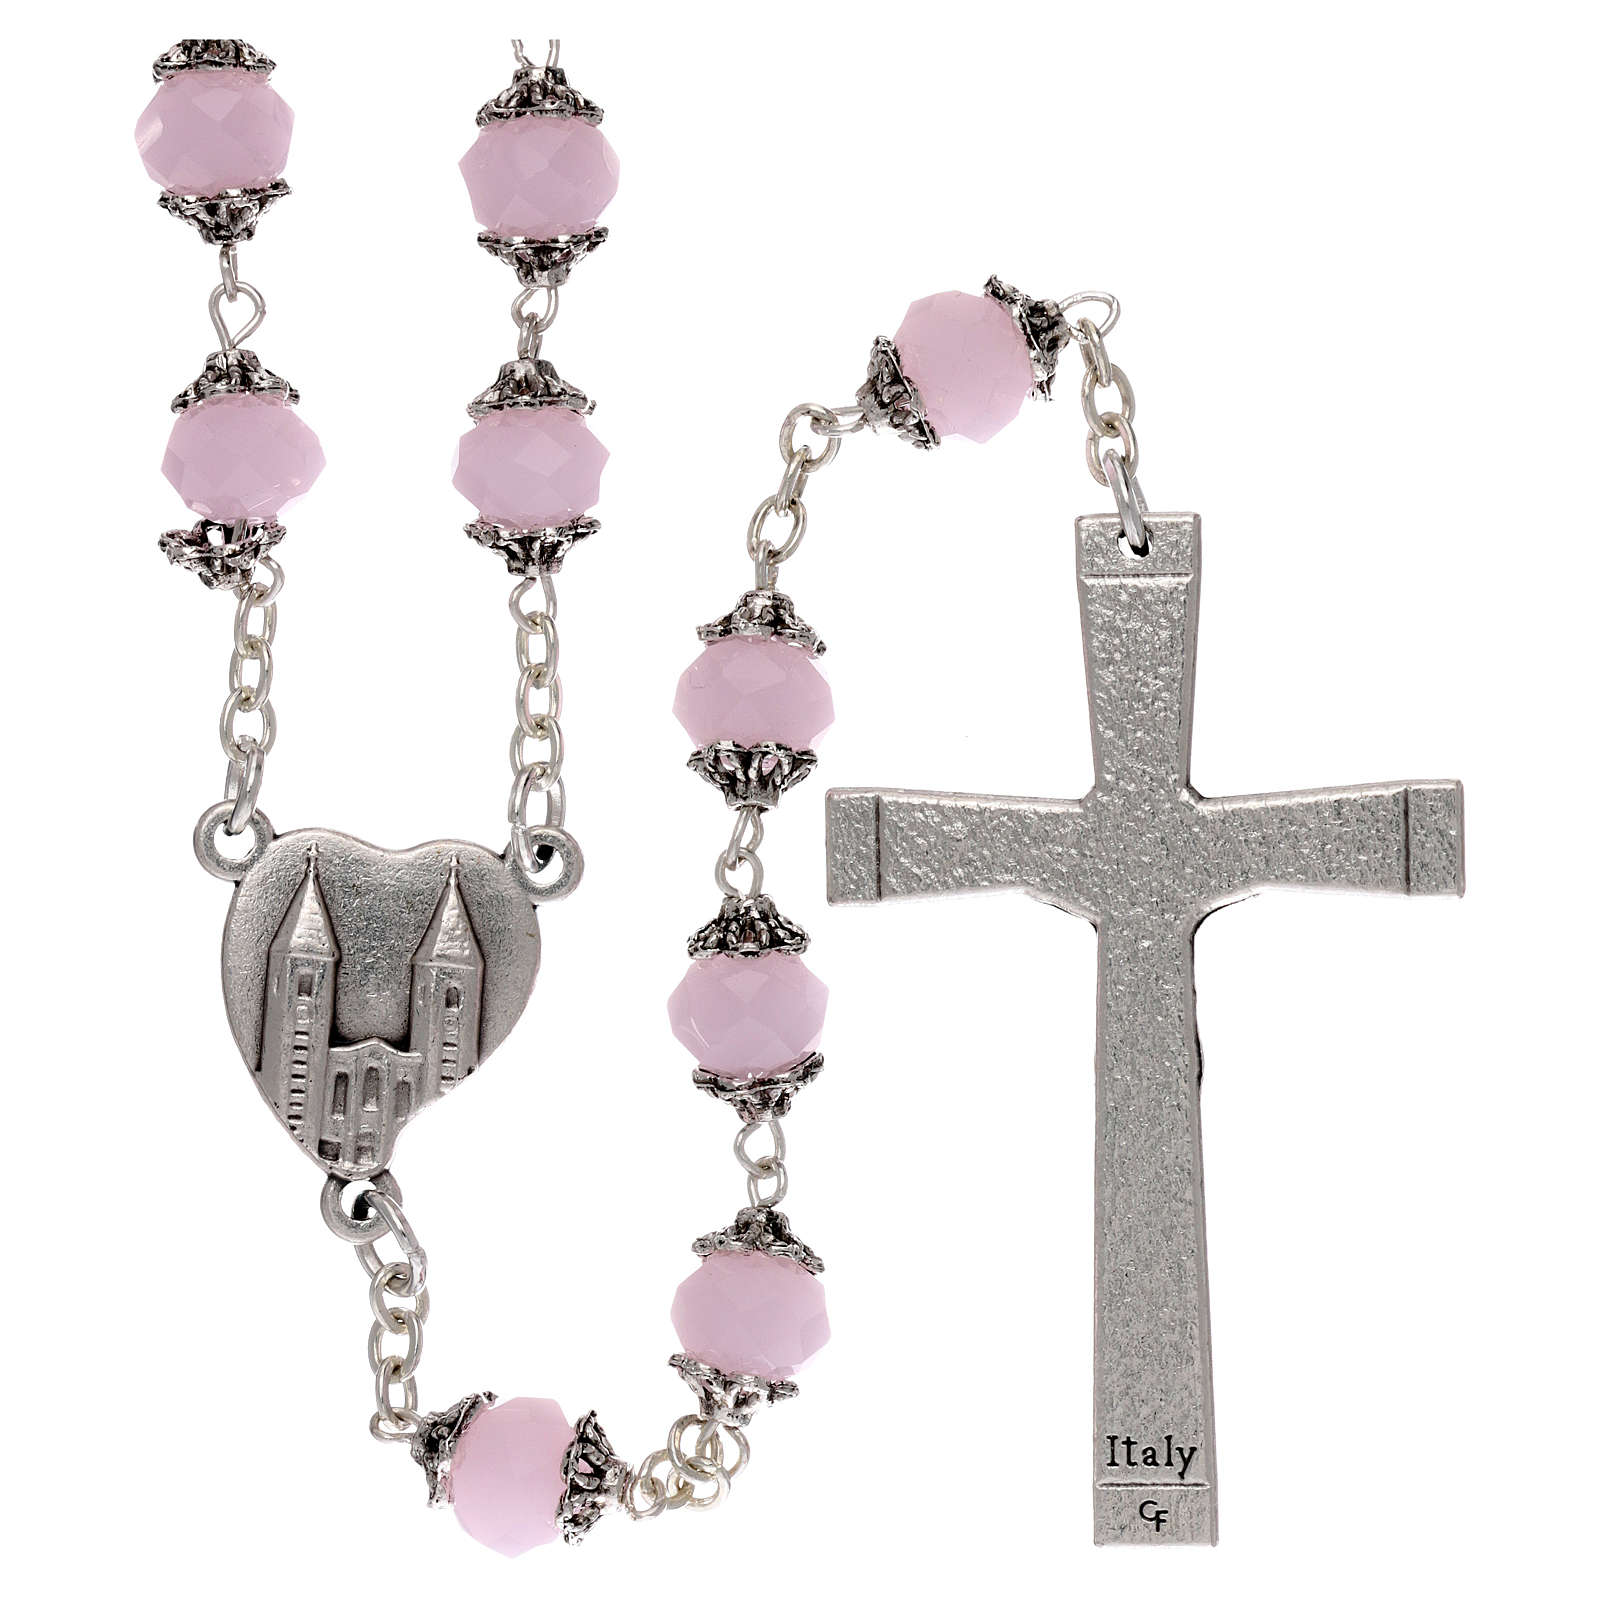 Medjugorje rosary with crystal pink grains 4